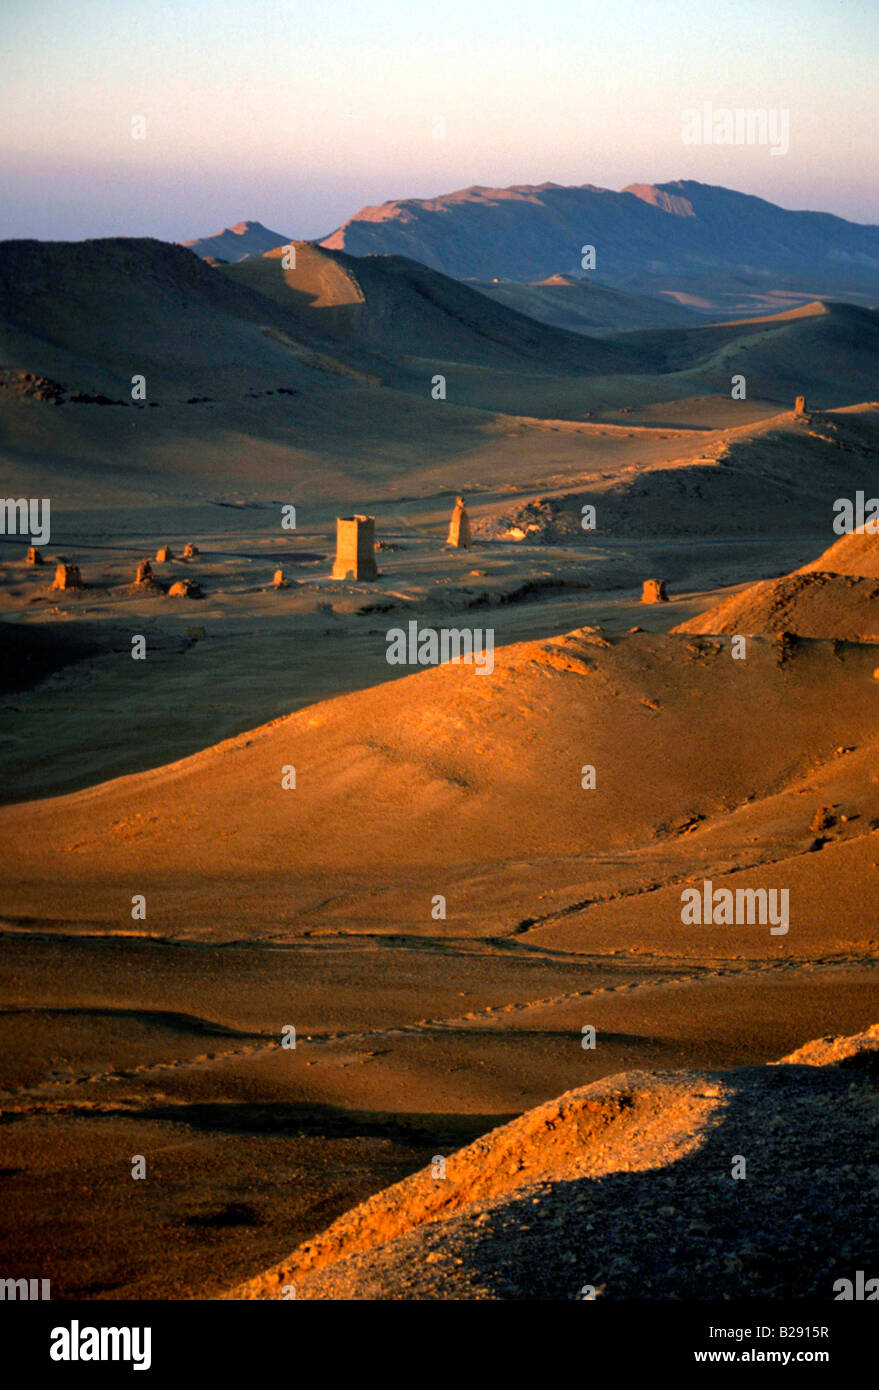 Palmyra at sunrise Syria Date 23 04 2008 Ref ZB955 113876 0028 COMPULSORY CREDIT World Pictures Photoshot - Stock Image